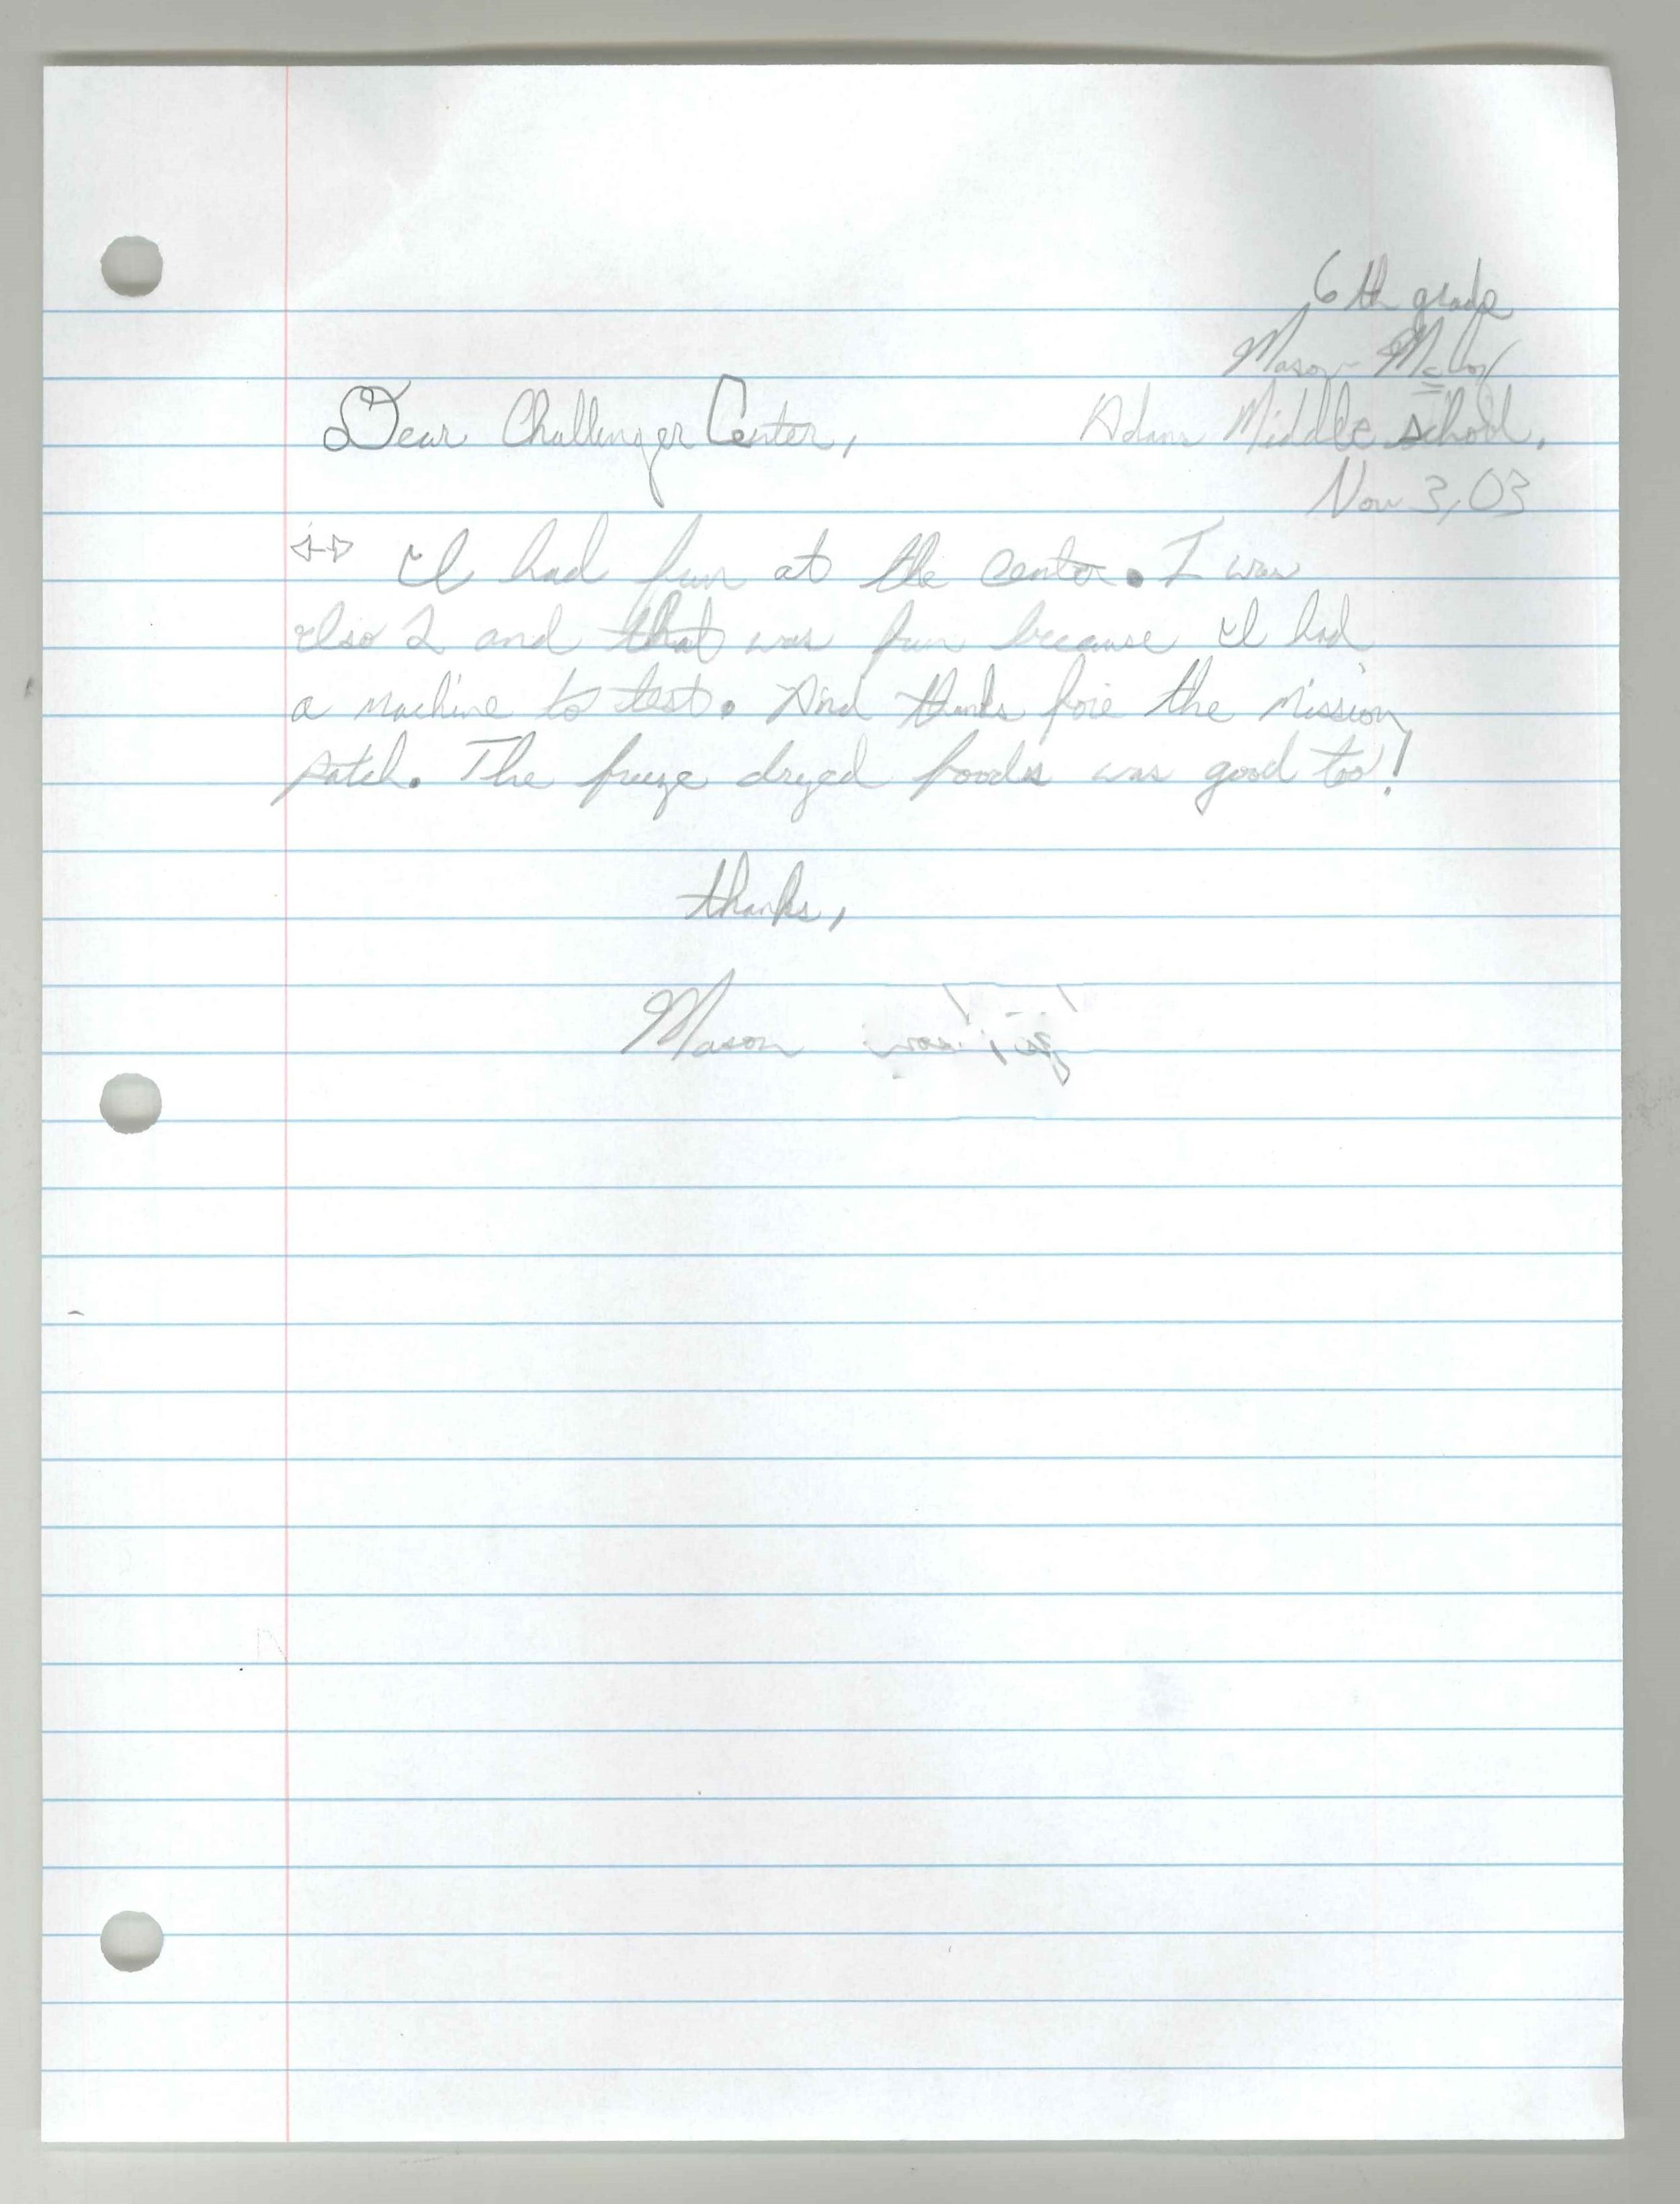 2003 AMS 6th grade thank you letters 4.jpg